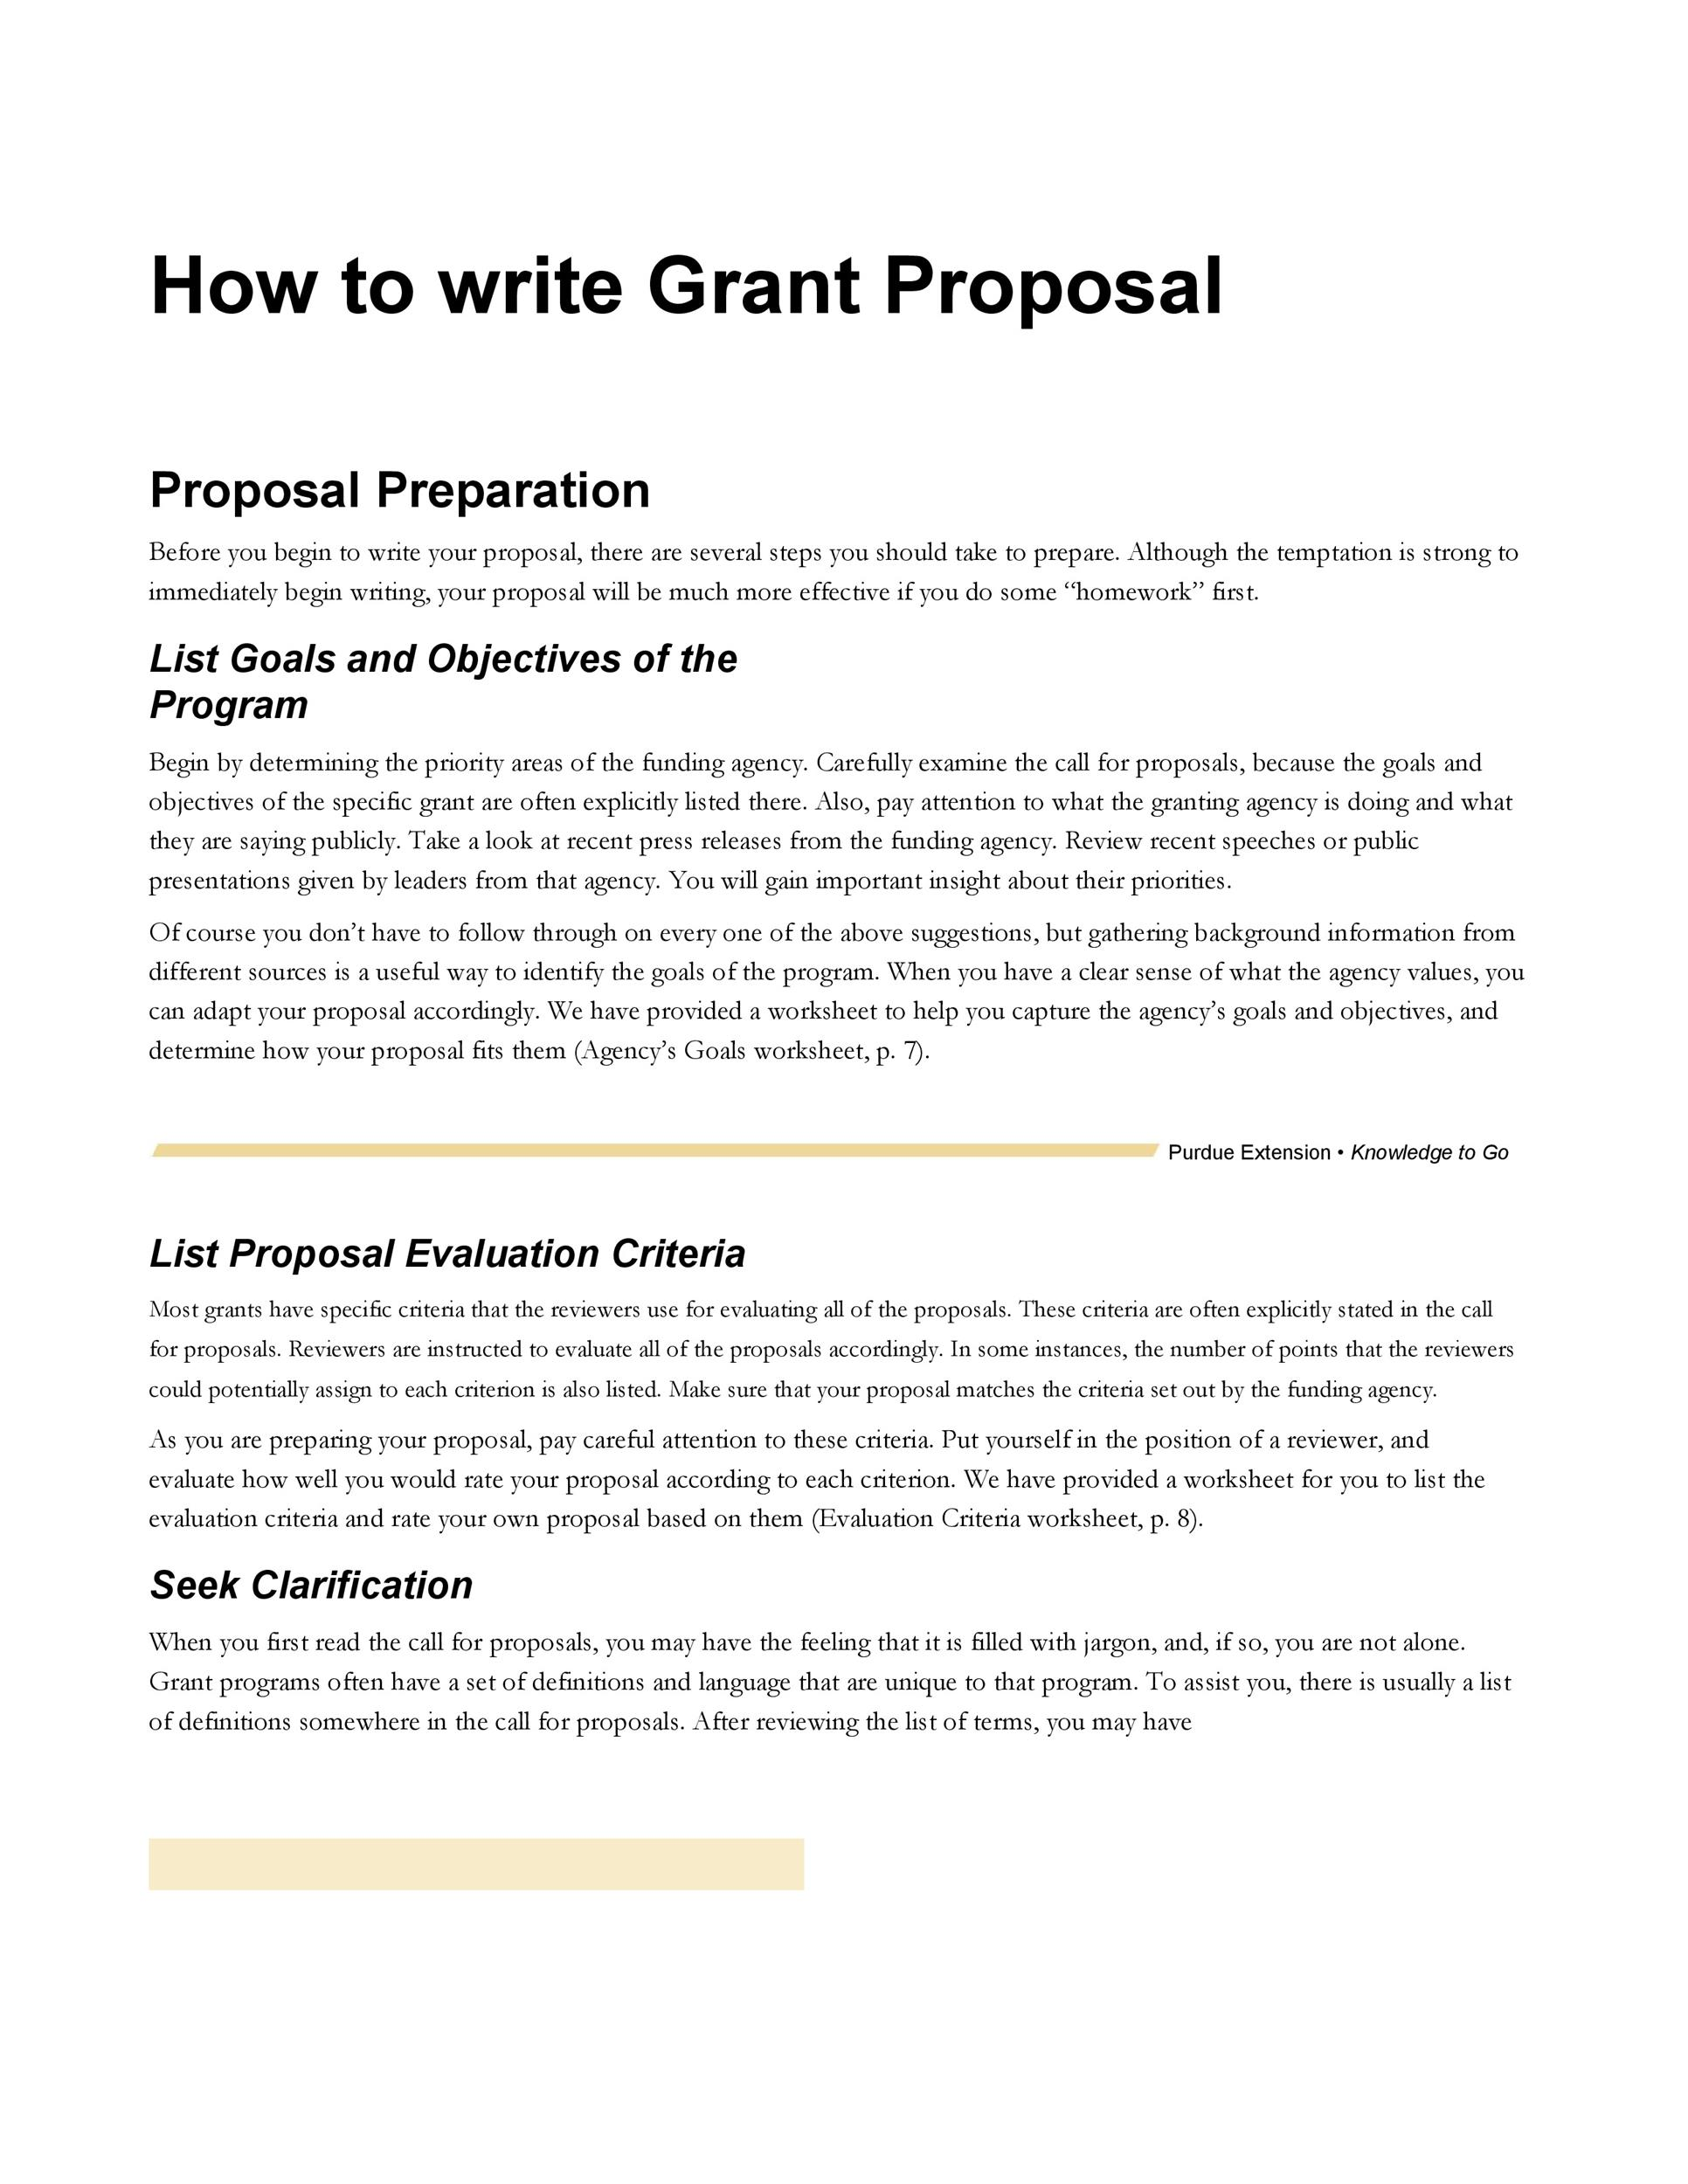 How to Write a Grant Proposal for a Non-Profit Organization